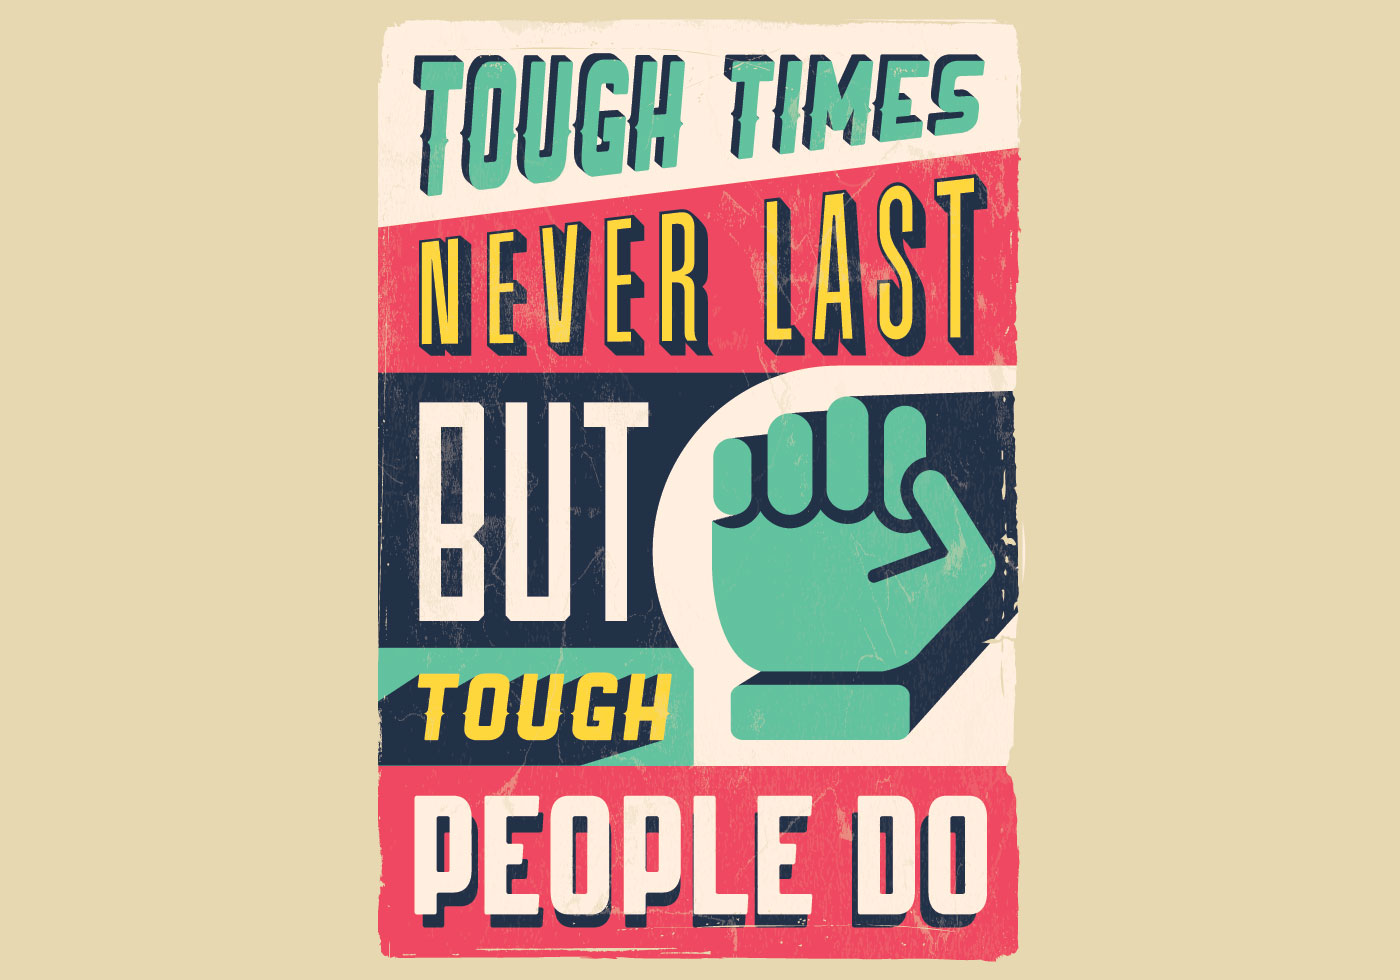 Tough Times Inspirational Poster - Download Free Vectors ...